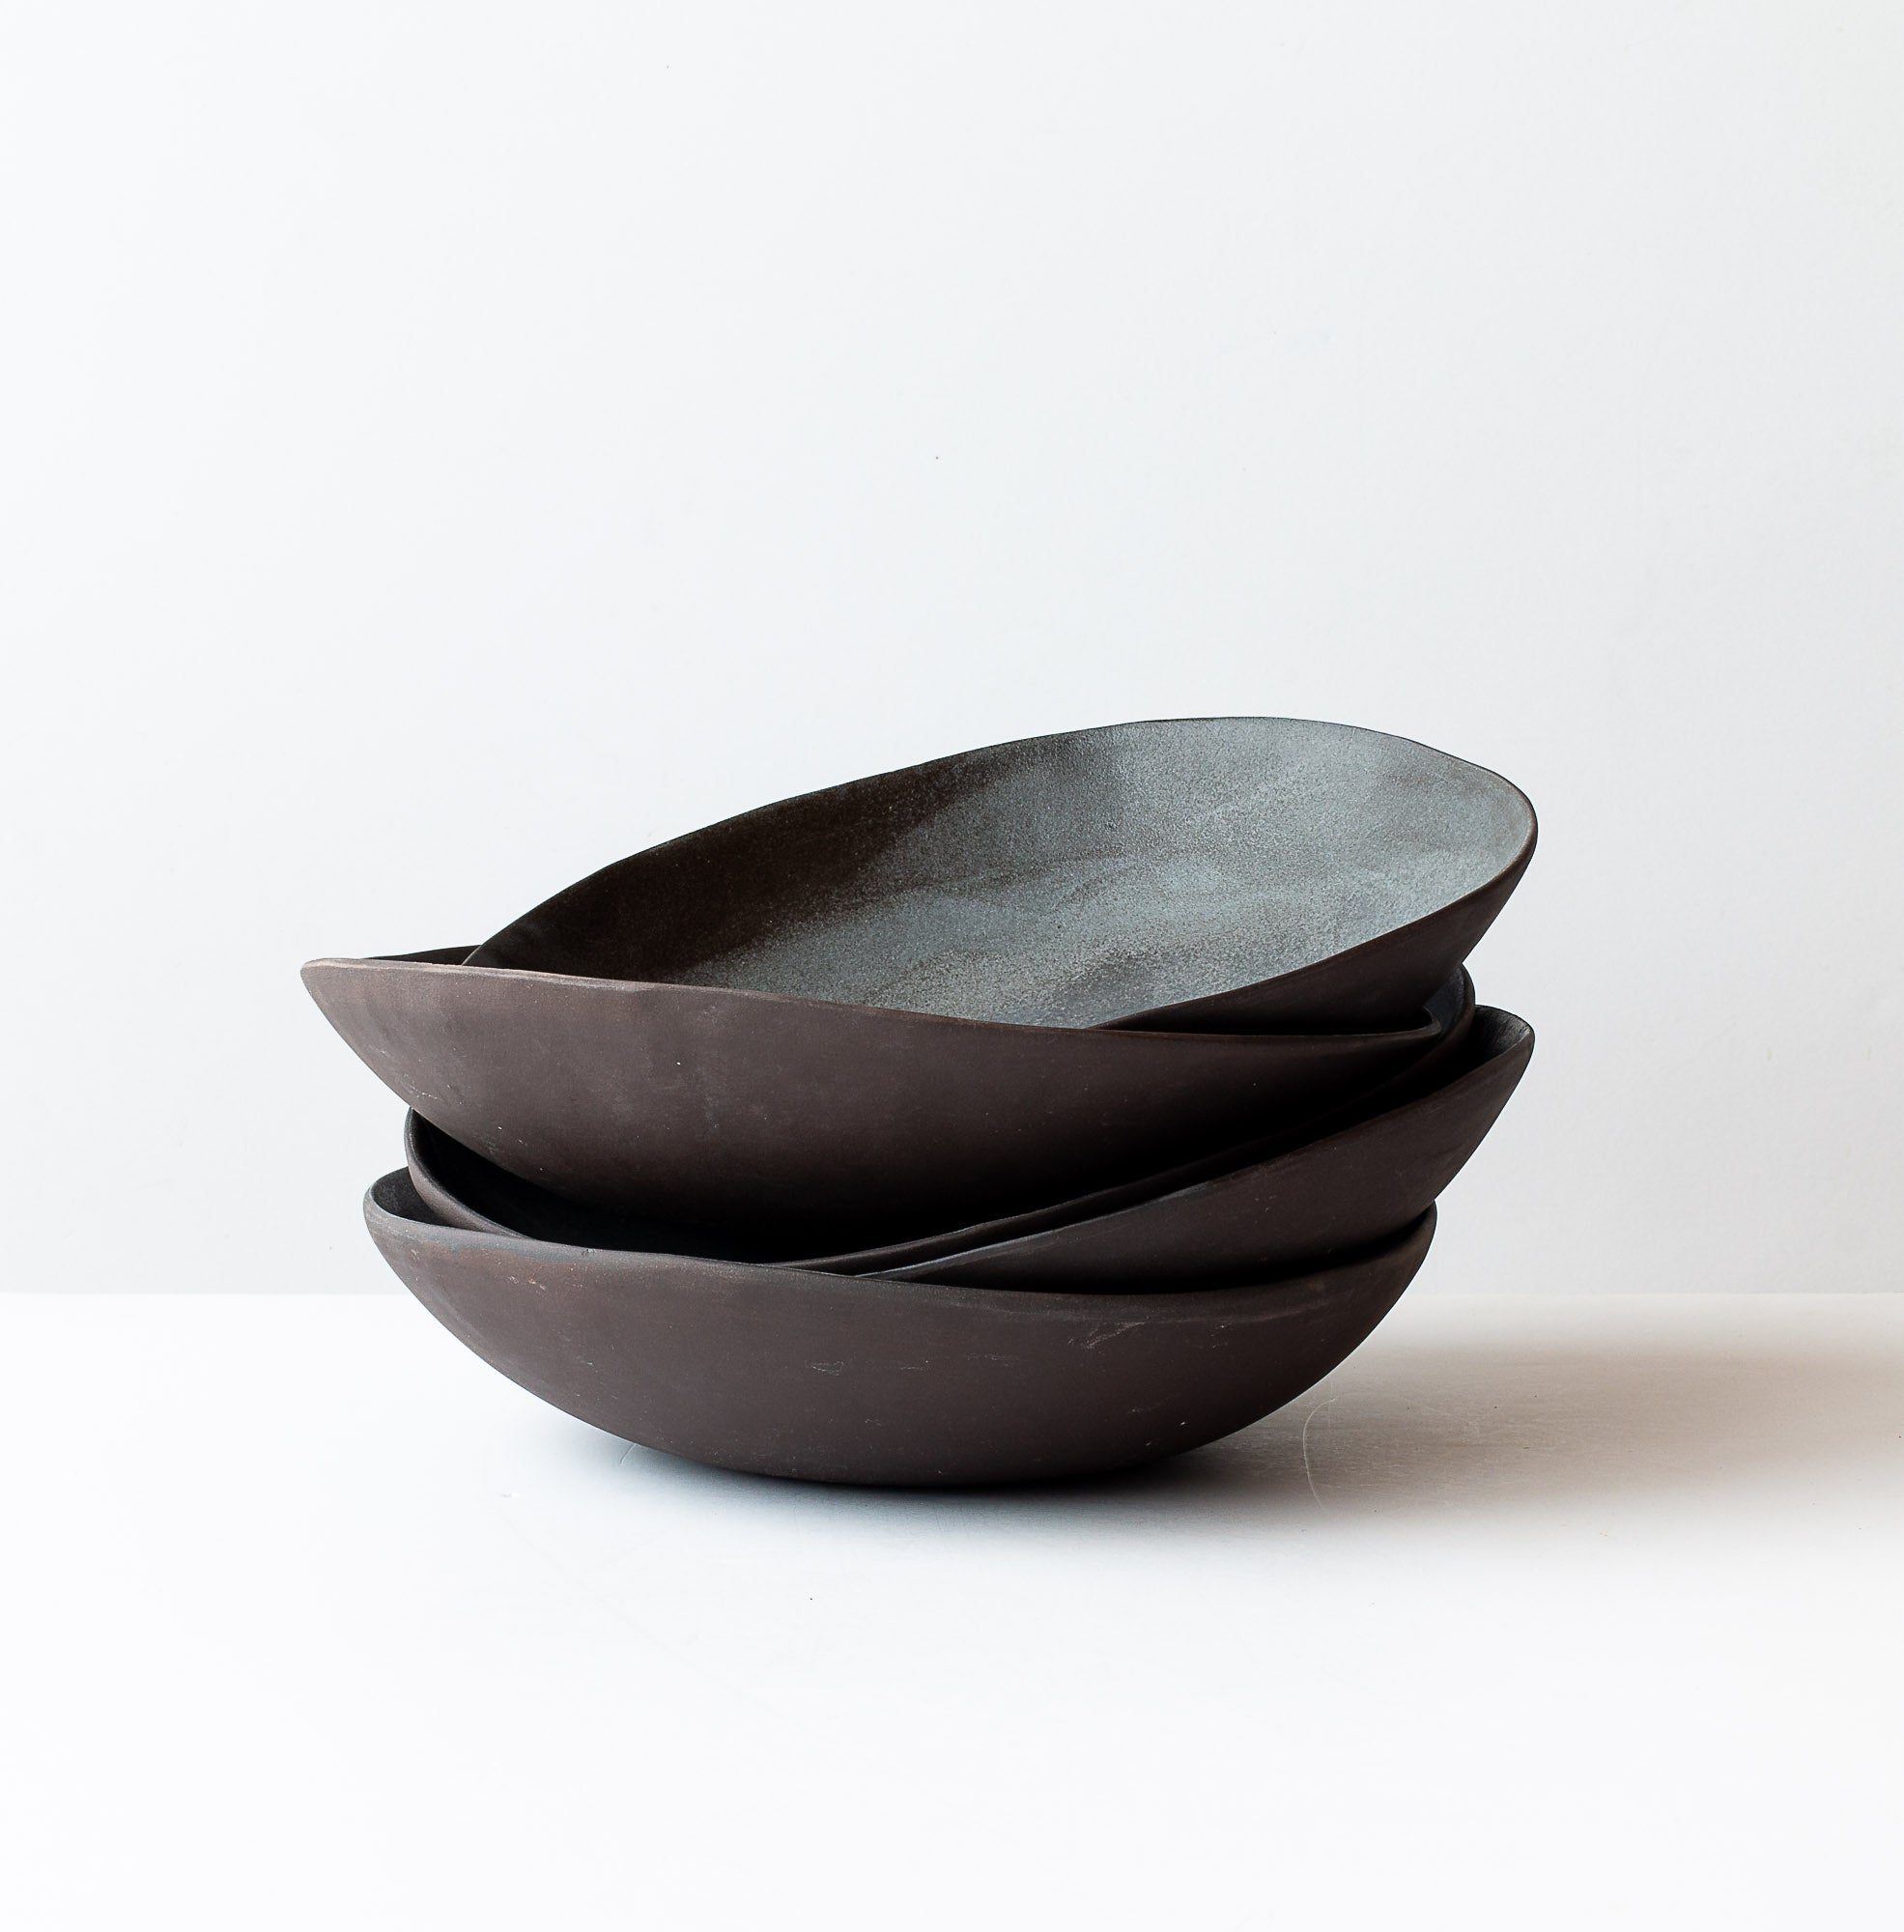 Pile of Five Handmade Wabi-Sabi Black Stoneware Dinner Size Bowls - Sold by Chic & Basta